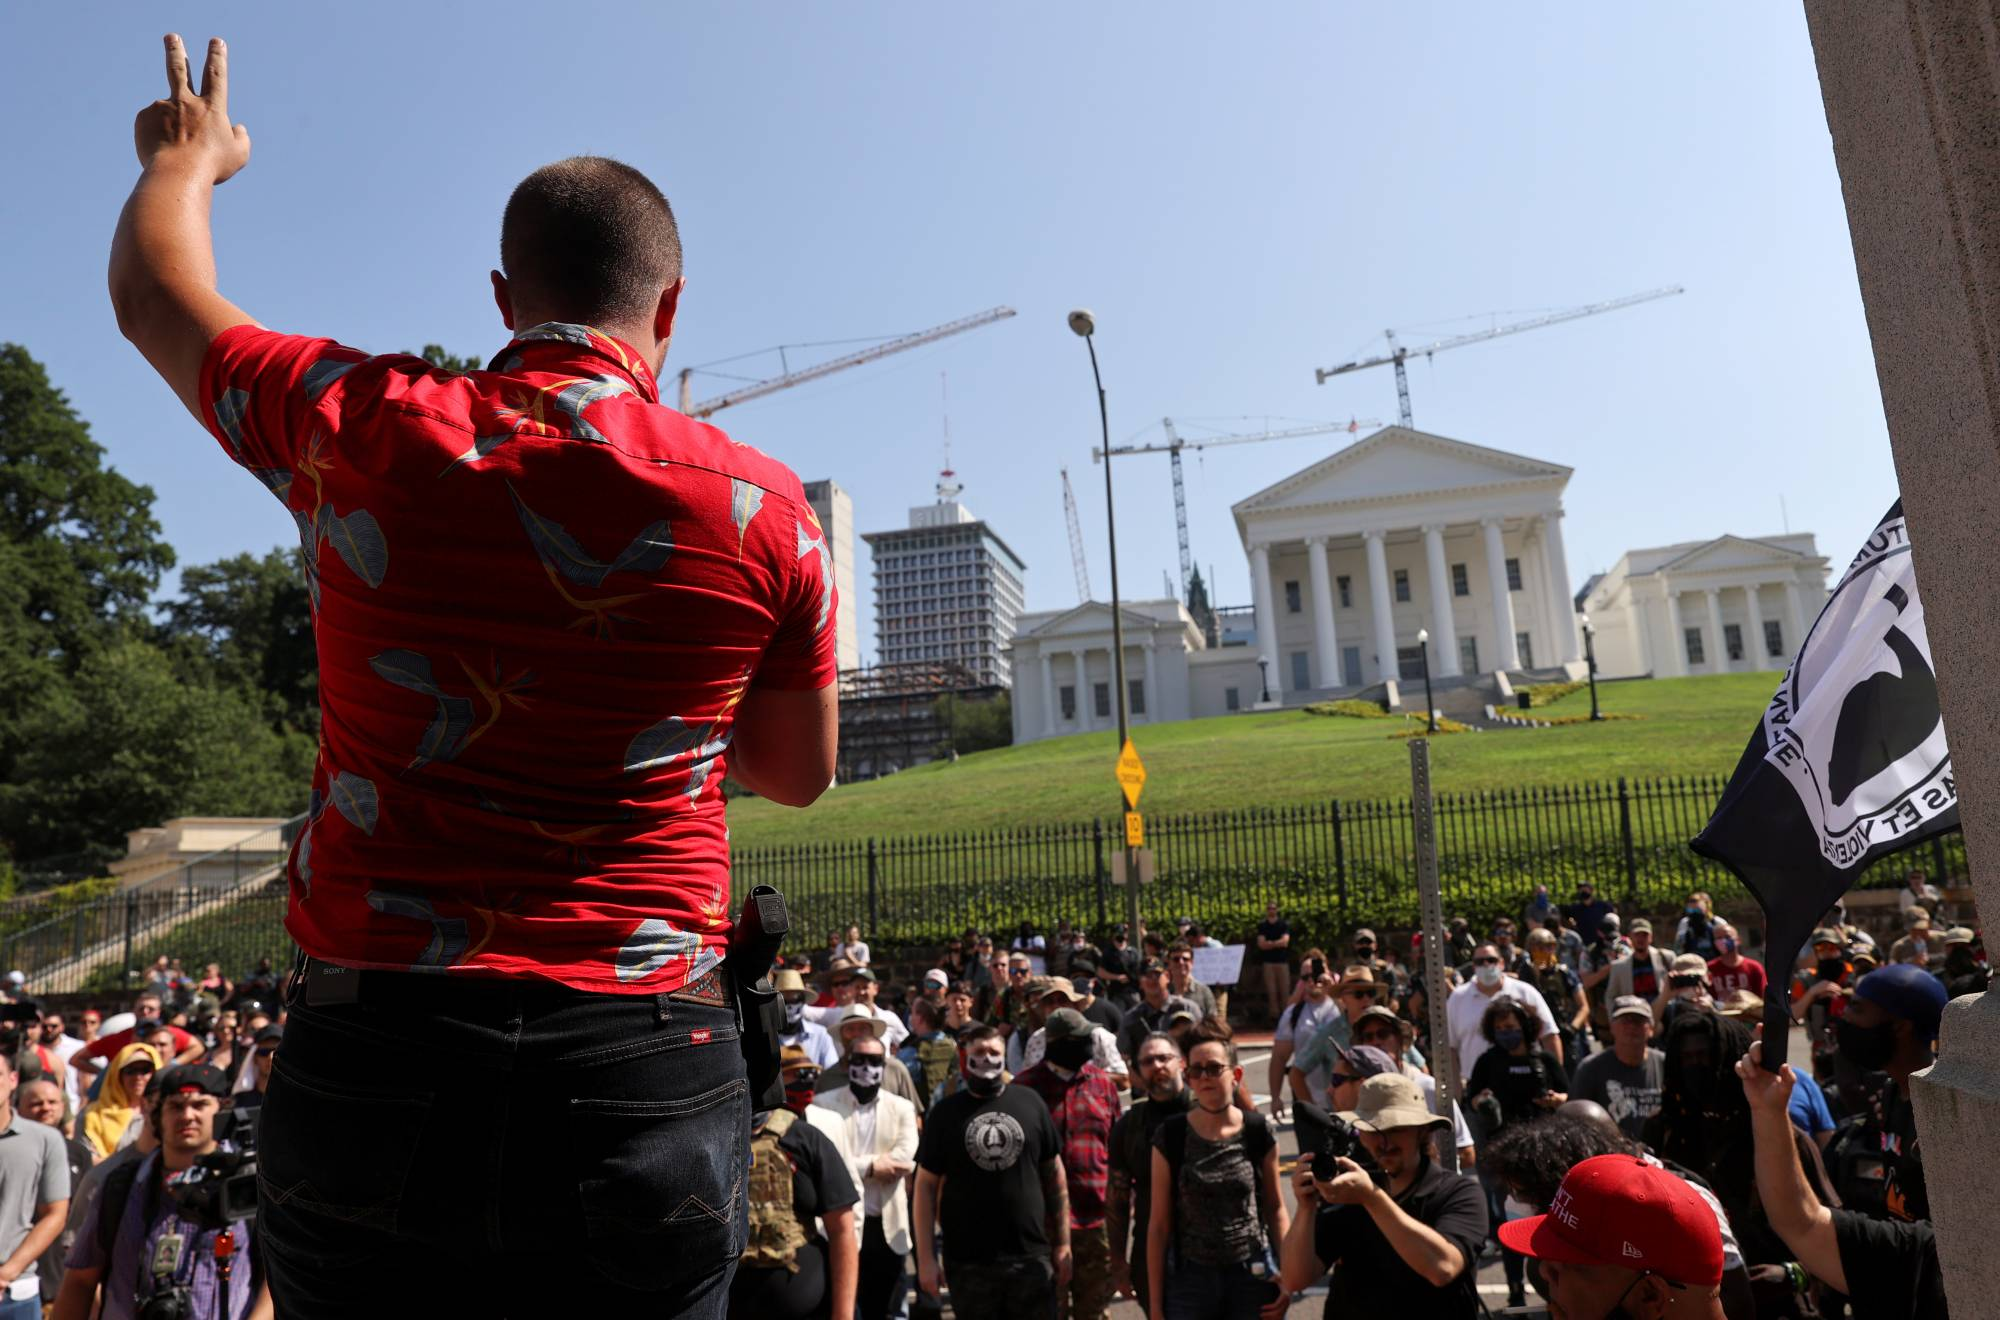 Protest leader Mike Dunn gestures as he speaks during a rally in Richmond, Virginia, in July. | REUTERS